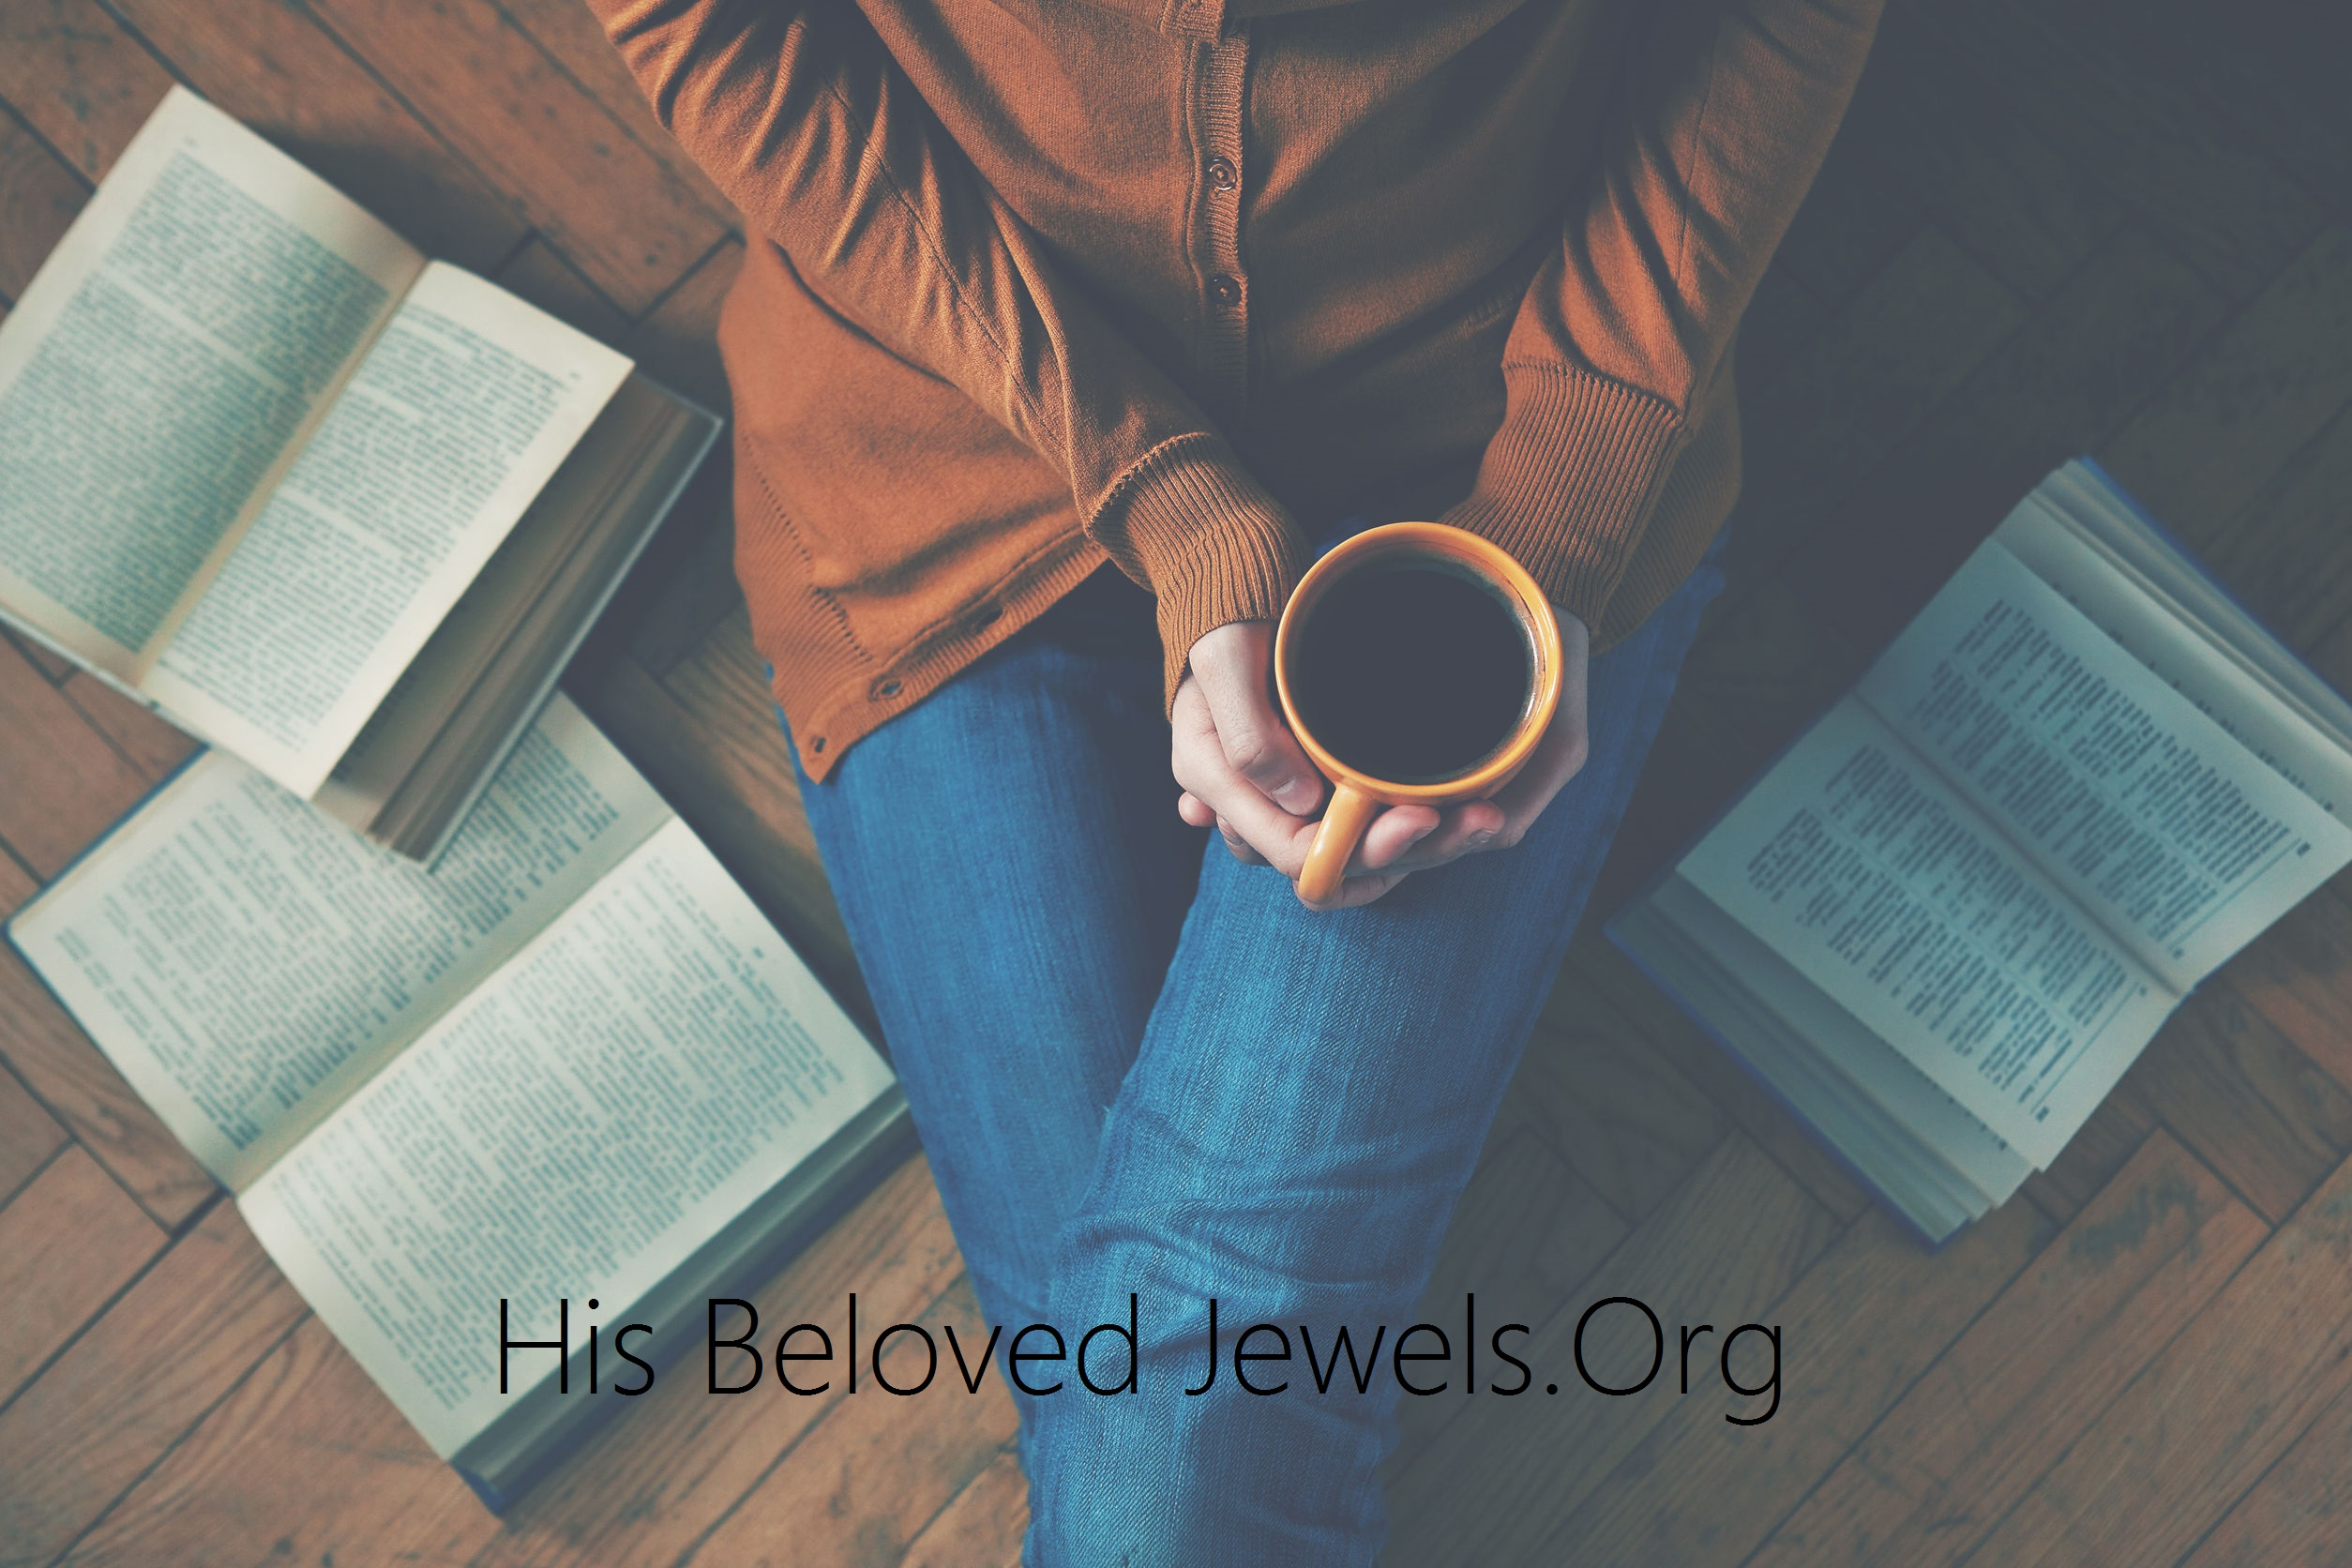 His Beloved Jewels